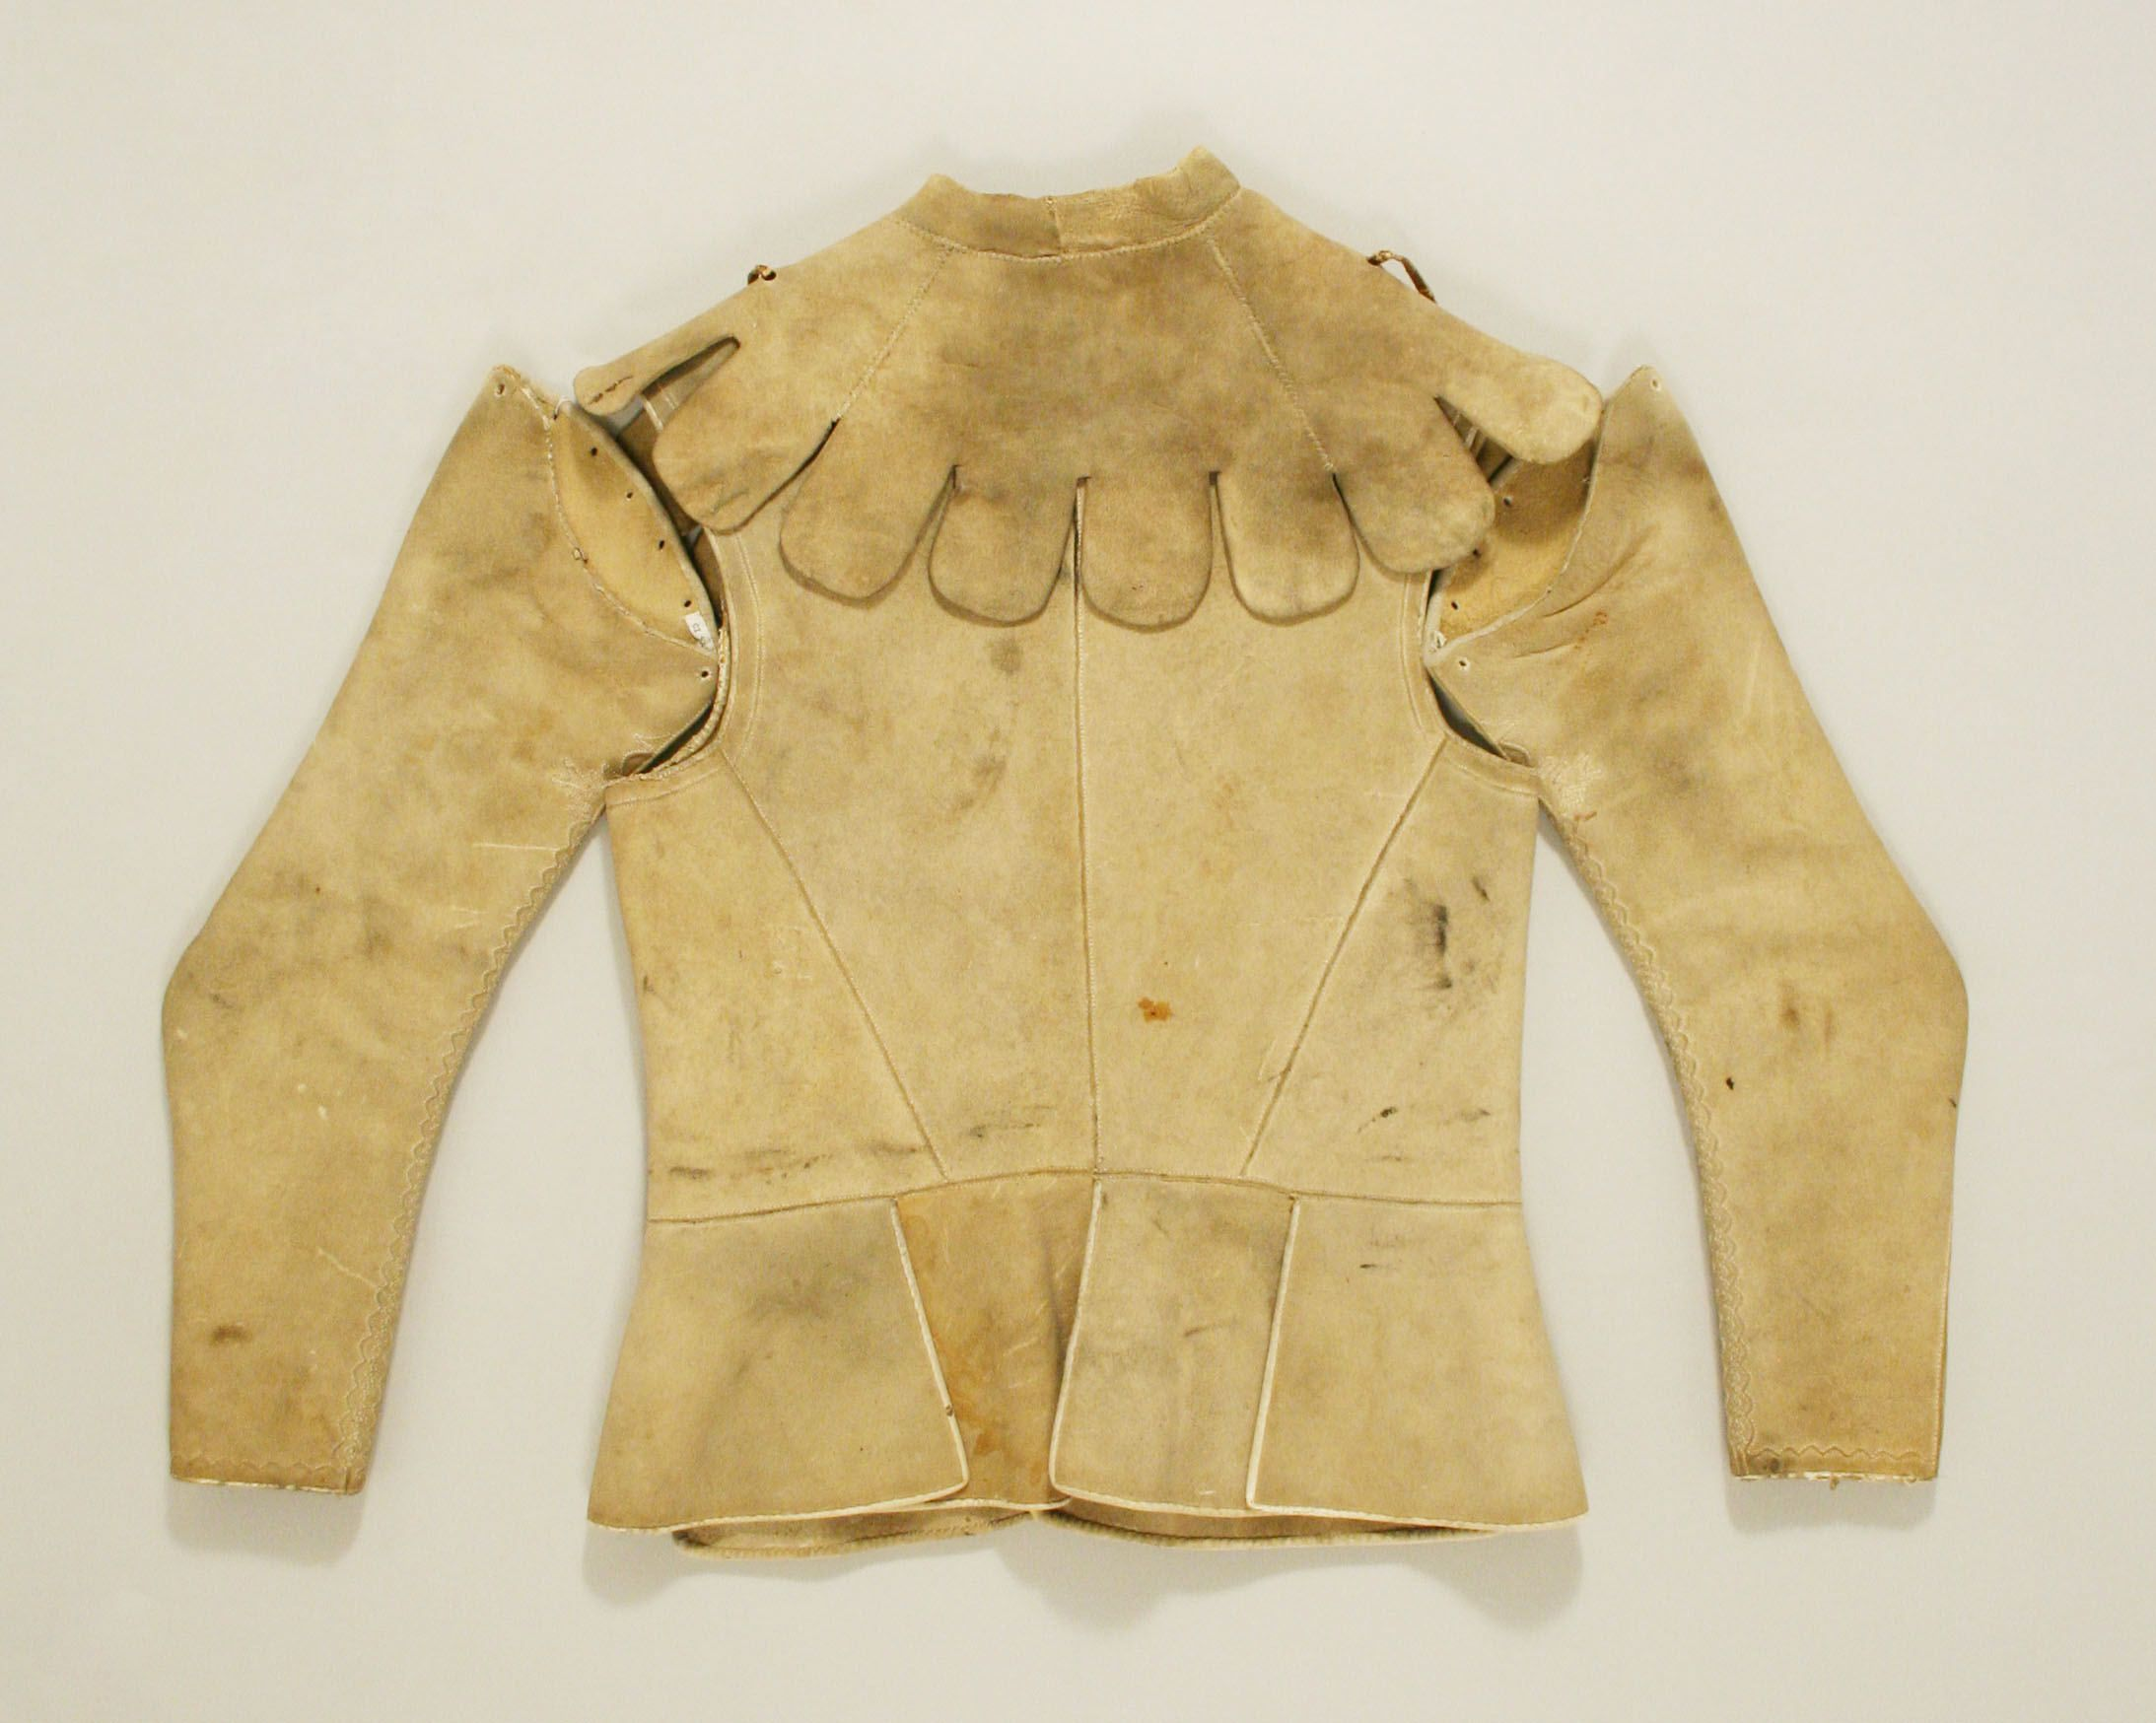 17th century jacket in 5 parts (the base vest and attachable sleeves and collar, back pictured) made of leather, The Metropolitan Museum of Art C.I.50.98.4a–d